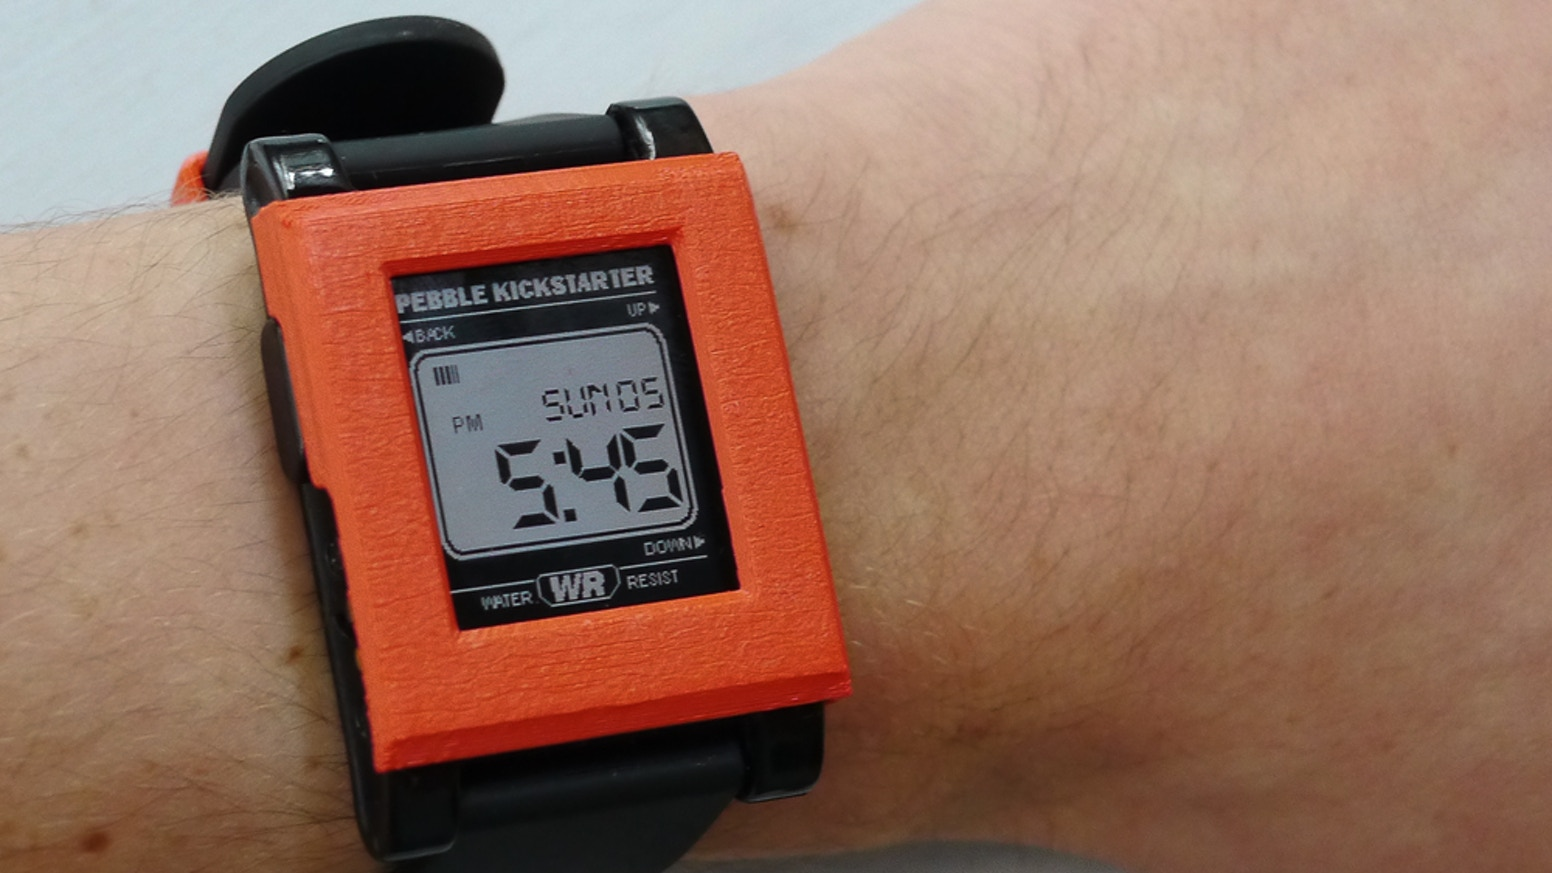 Pebble Watch Covers By Drew Beller Kickstarter Time Smartwatch Red 3d Printed Interchangeable To Give It A Fresh New Look